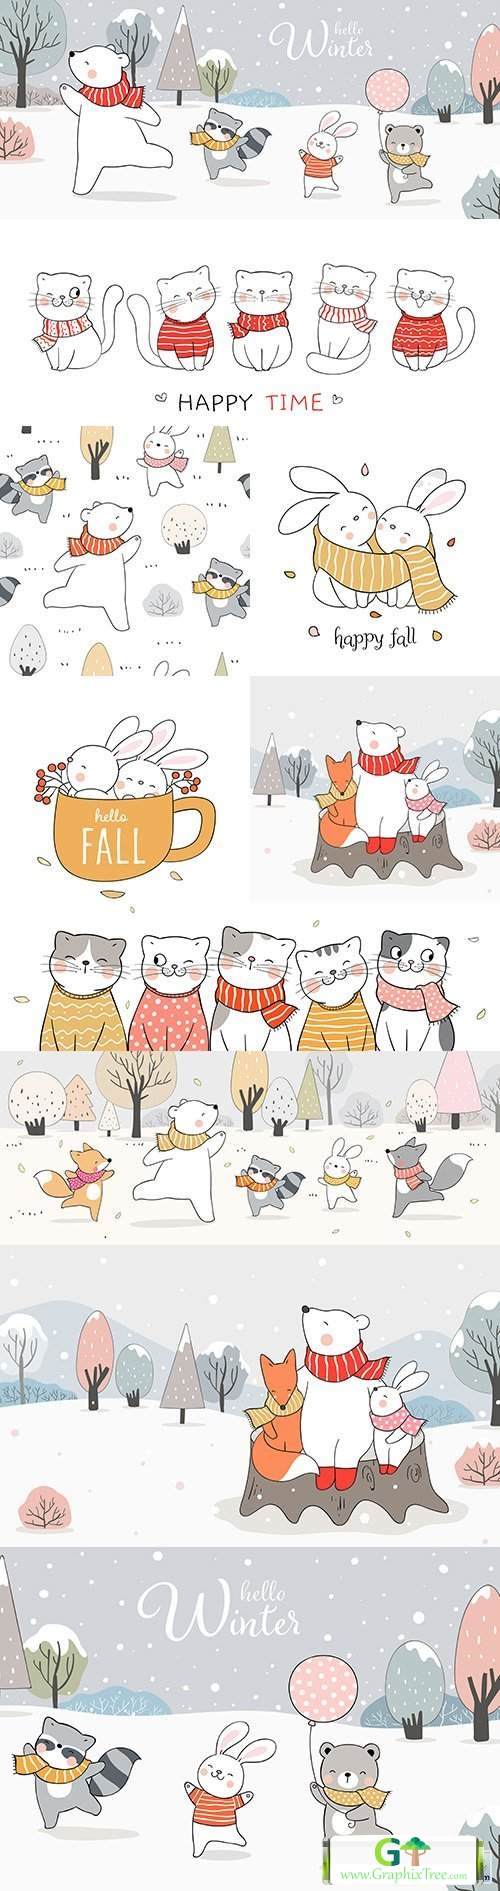 Hello winter forest animals cartoon drawn illustrations